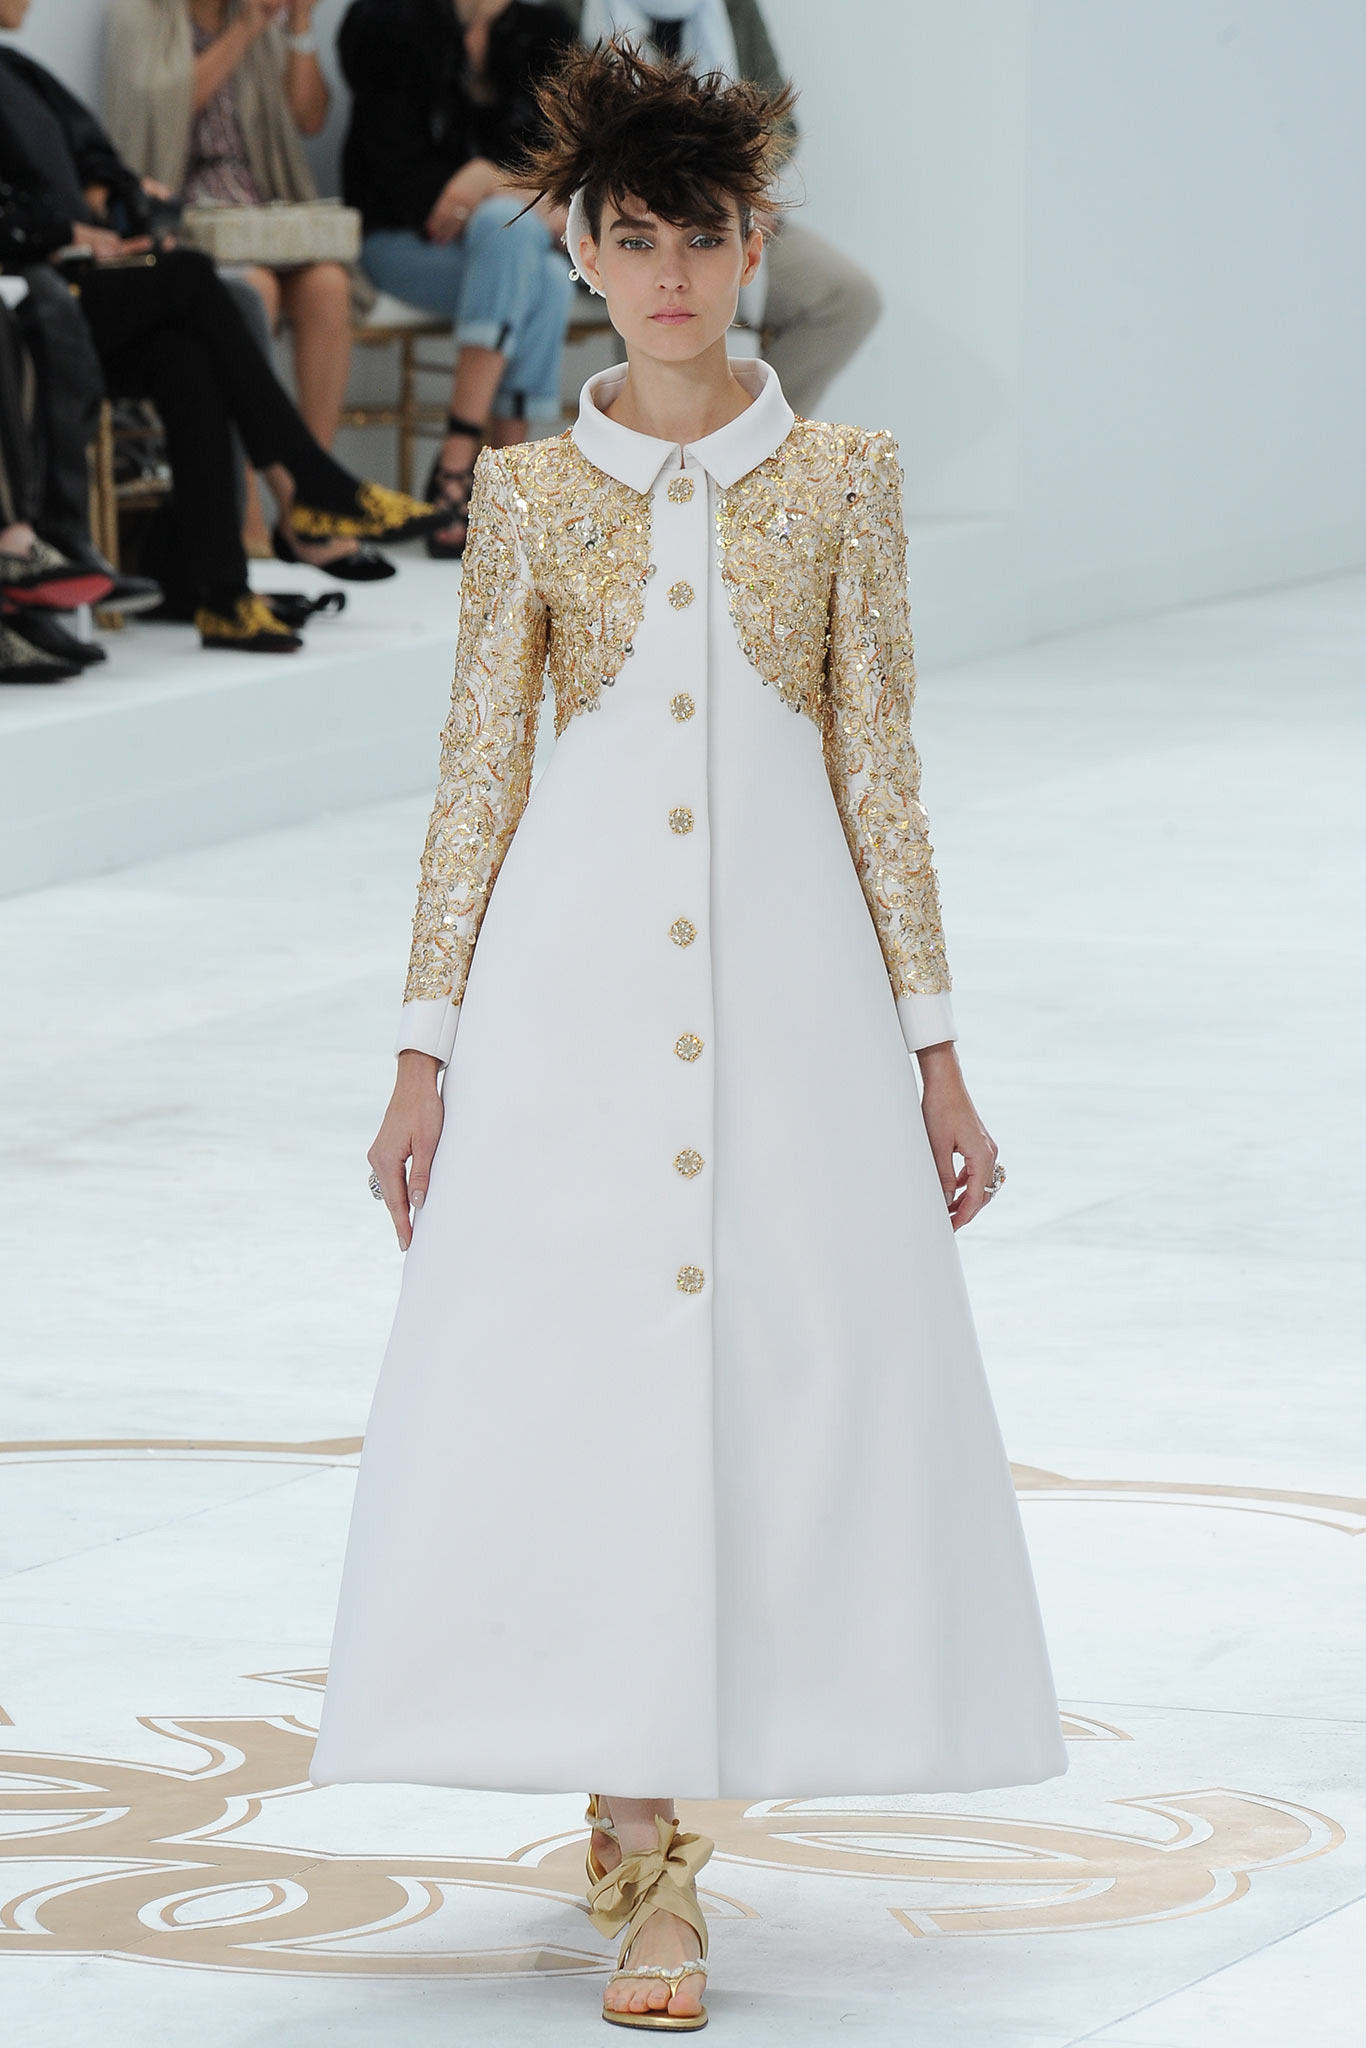 Chanel Fall Winter 2013 Bag Collection: Chanel Haute Couture Fall 2014 Collection